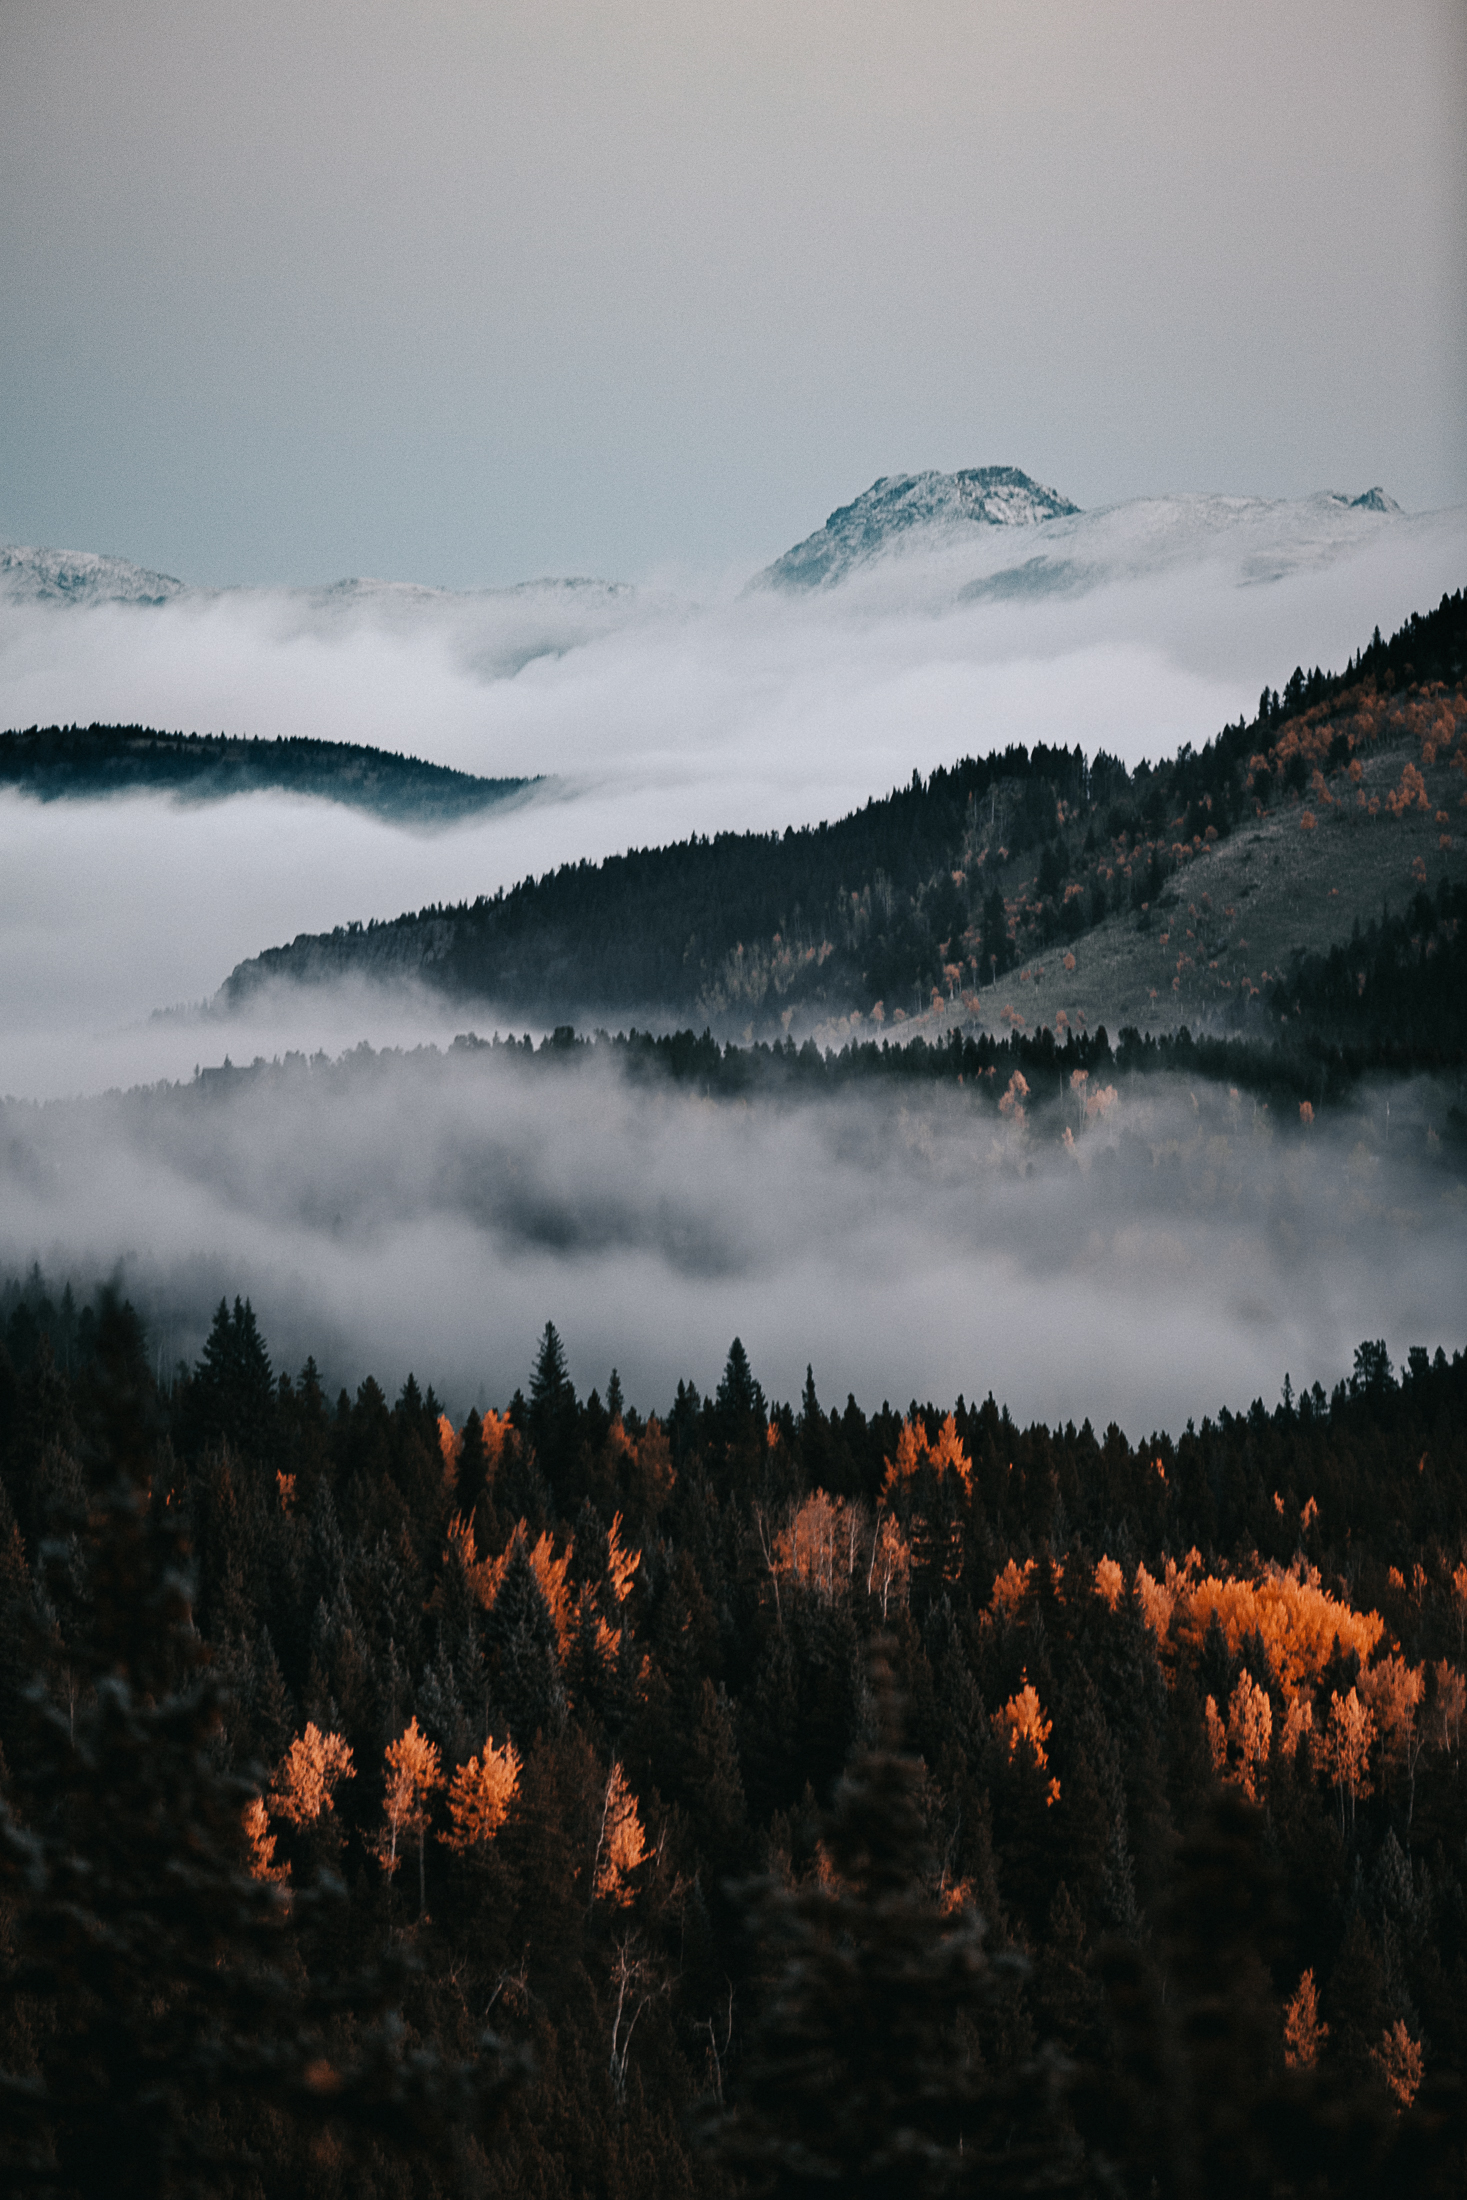 evergreen_FALL_FOG_photo_jimmy_bowron_denver_colorado (1 of 9).jpg